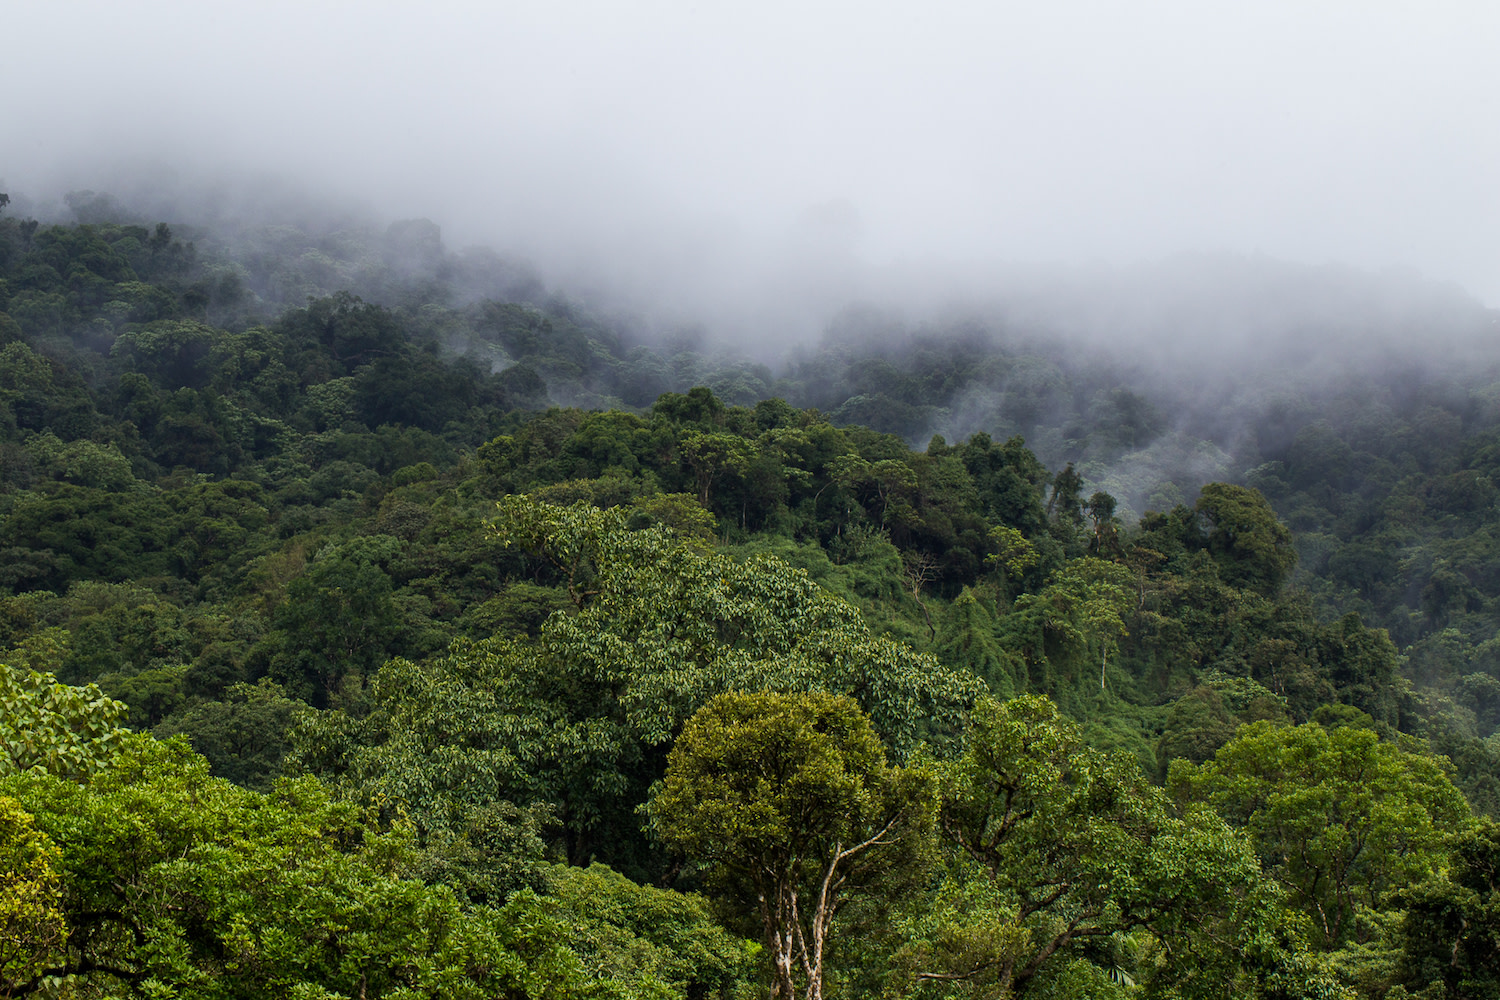 Much of the wilderness in Wayanad comes under the definition of a 'cloud forest'. Tropical forests like this area near Aranmala peak in Wayanad, are often covered with a form of low cloud cover just above the tree canopy through a process known as evapotranspiration (the movement of water vapour into the atmosphere from land). Photo: Saurabh Sawant